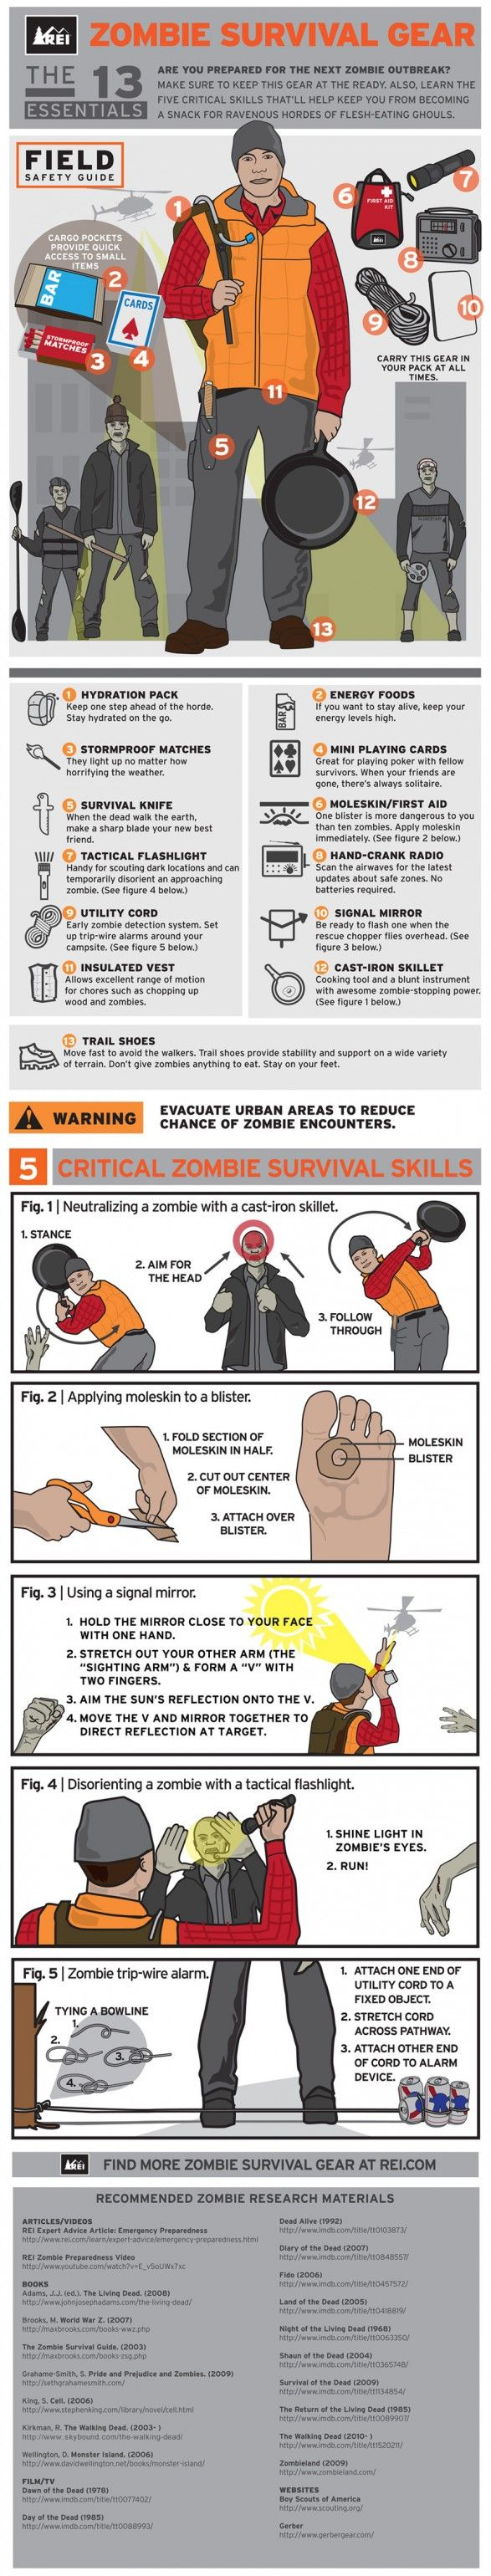 Zombie Survival Guide | Extremely-Sharp | infographic | Defense plan for Zombie Apocalypse | undead are coming, you need the tools to protect yourself. ESknives.com |